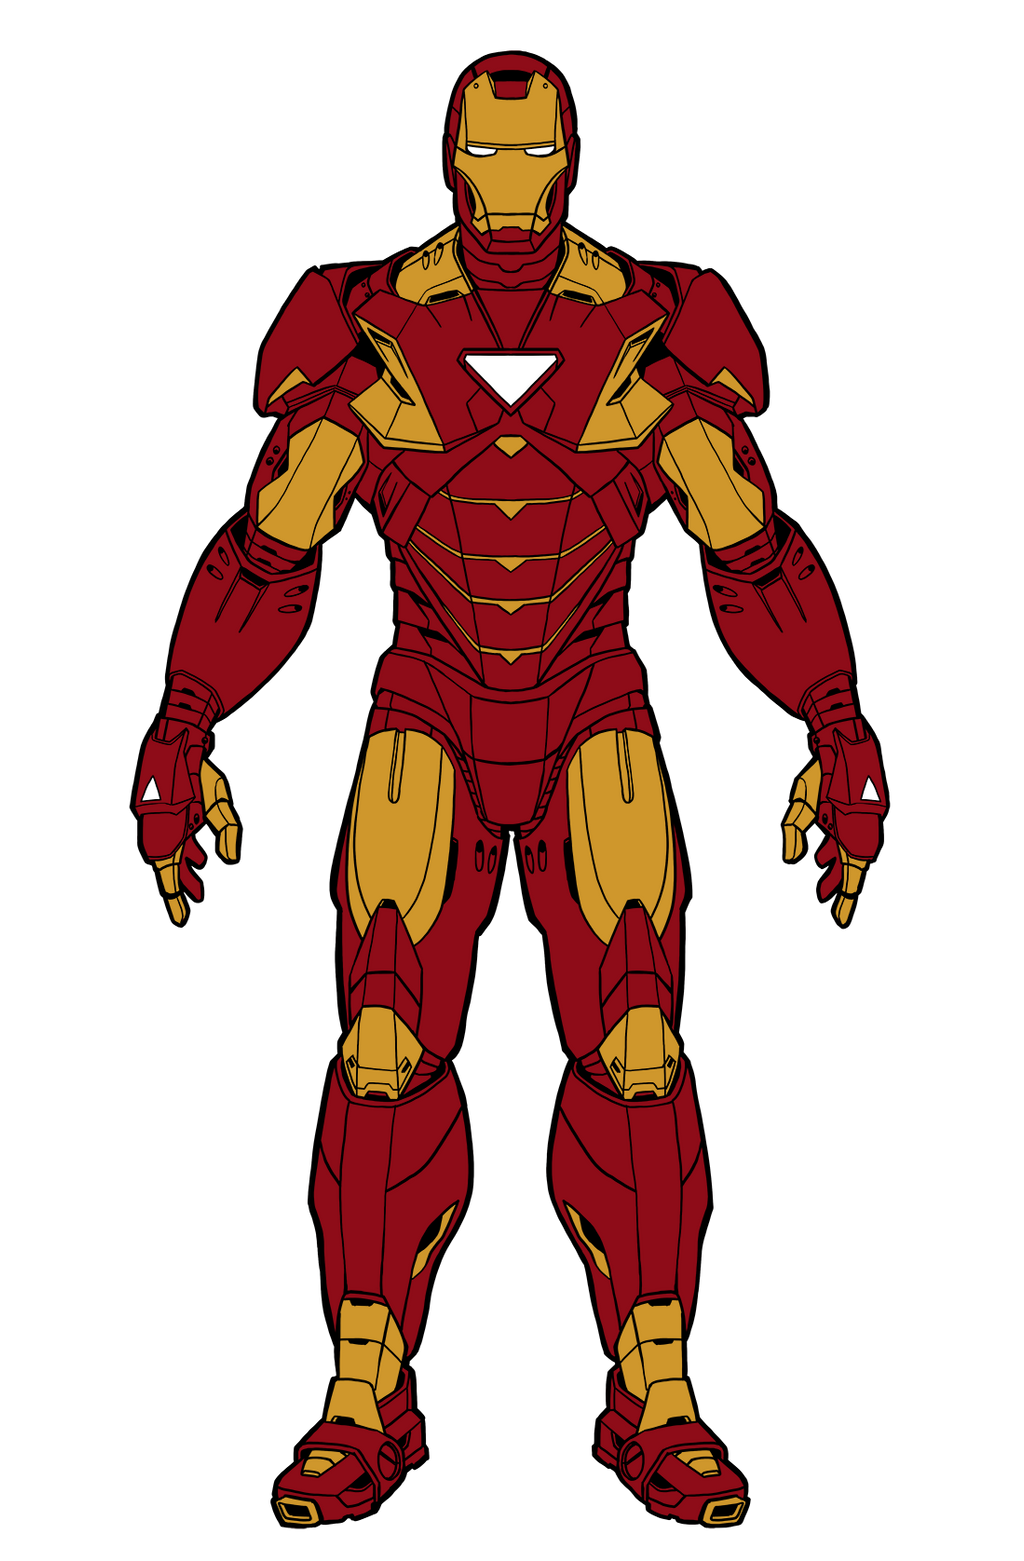 Iron Man Cartoon Drawing Full Body | www.imgkid.com - The ...